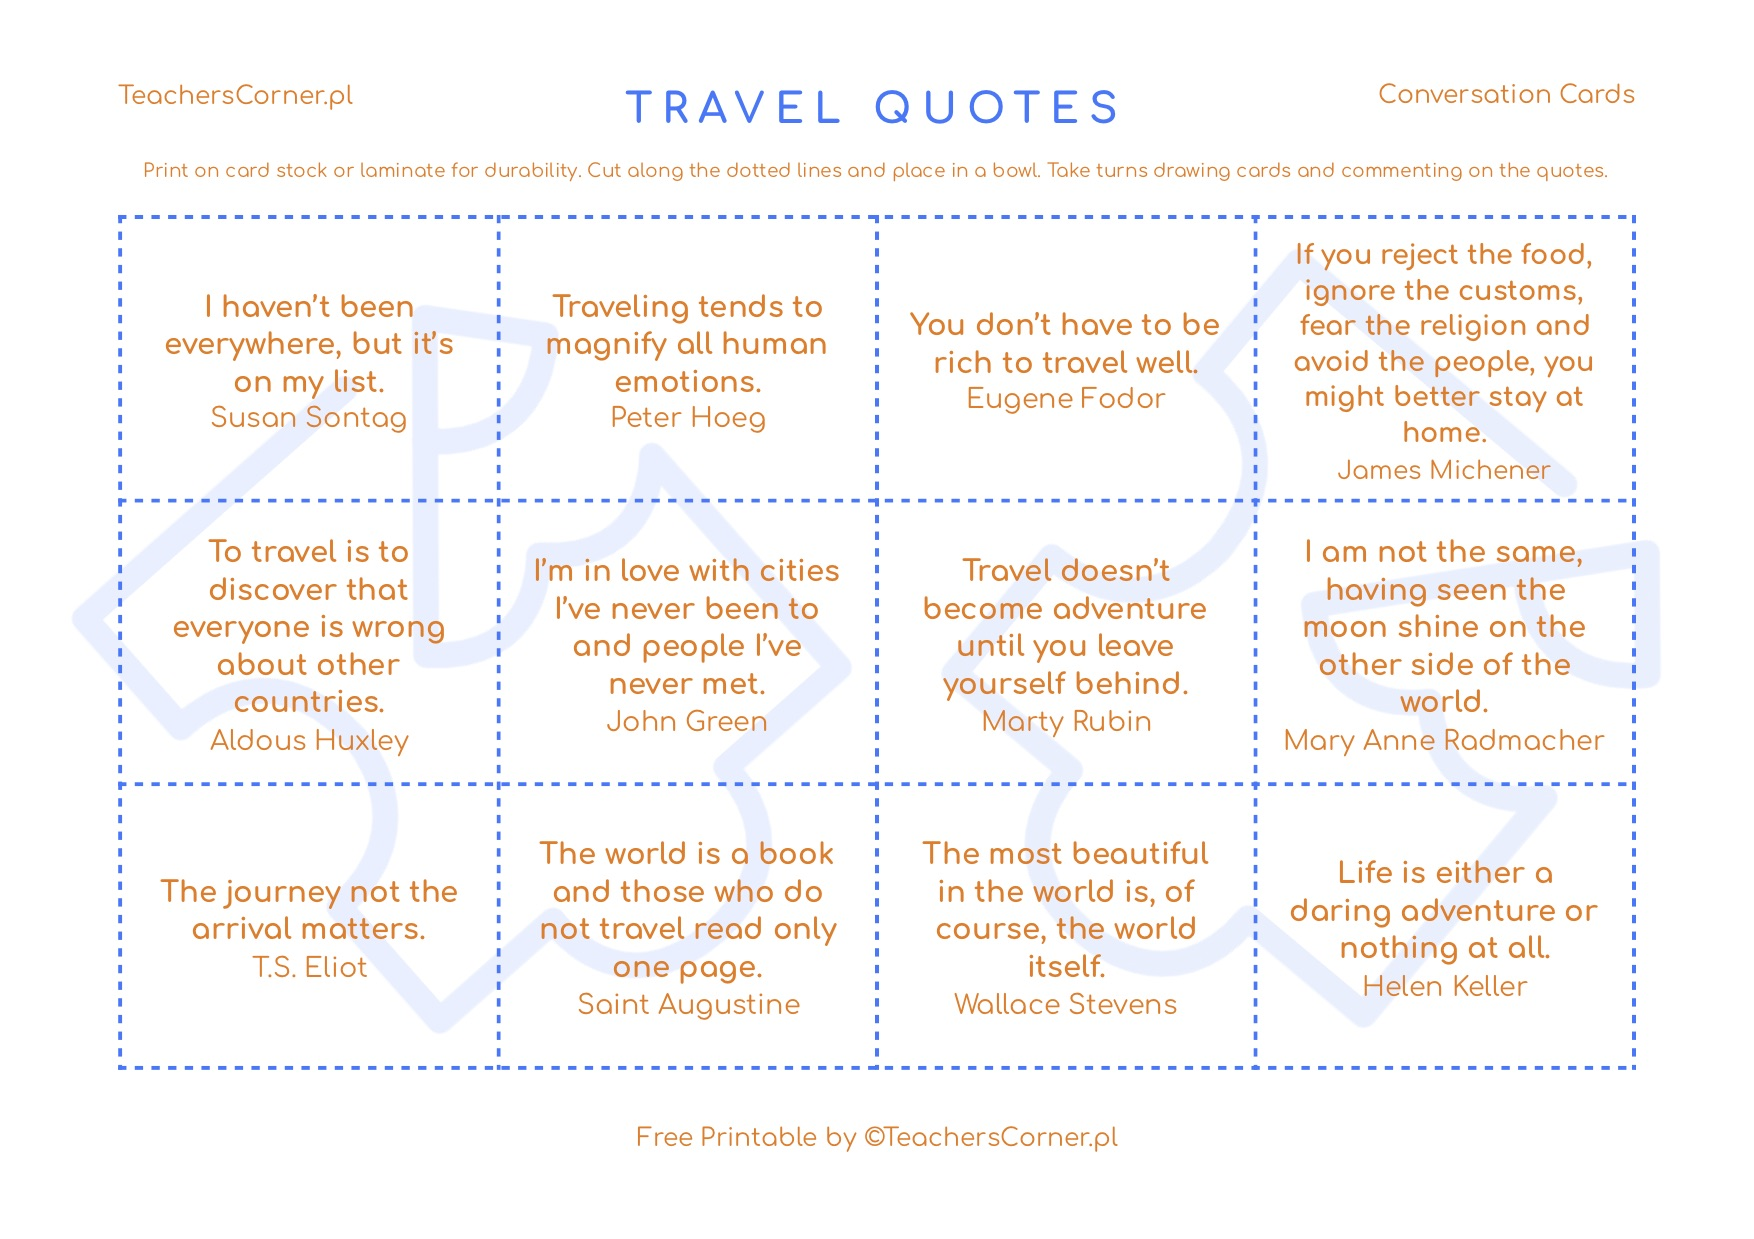 Conversation Cards - Quotes about Travel